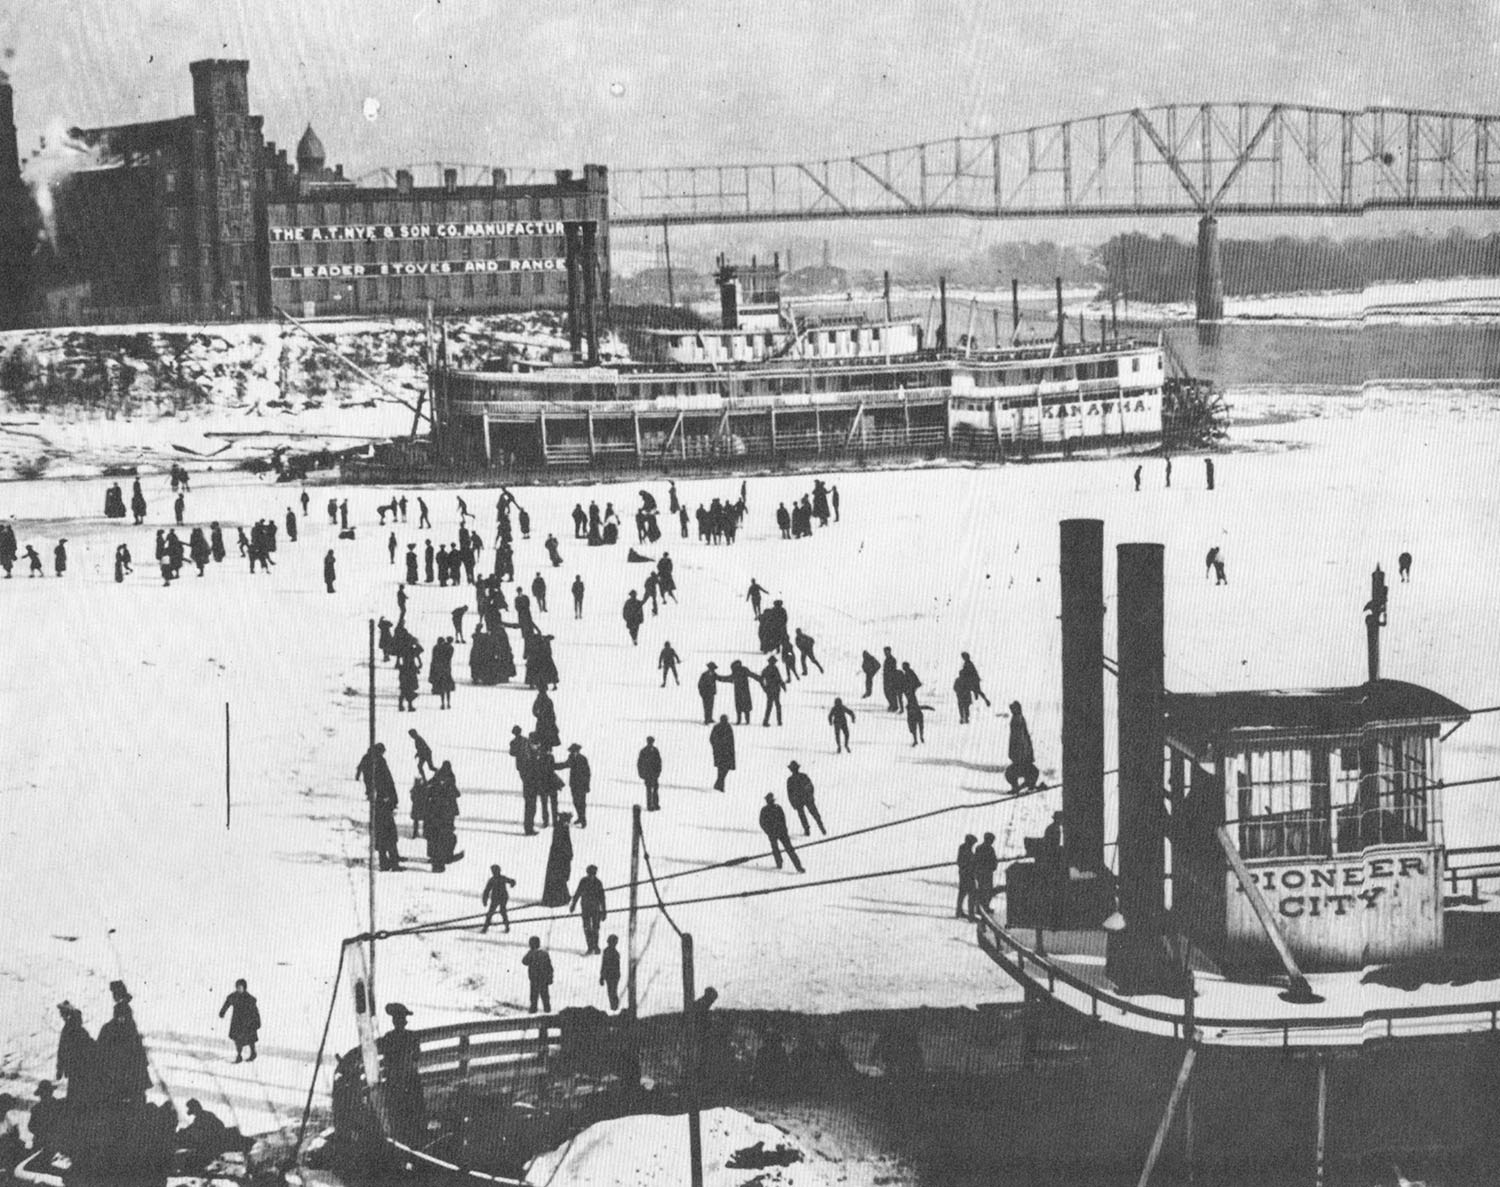 The frozen Muskingum River at Marietta, Ohio, in early 1905.